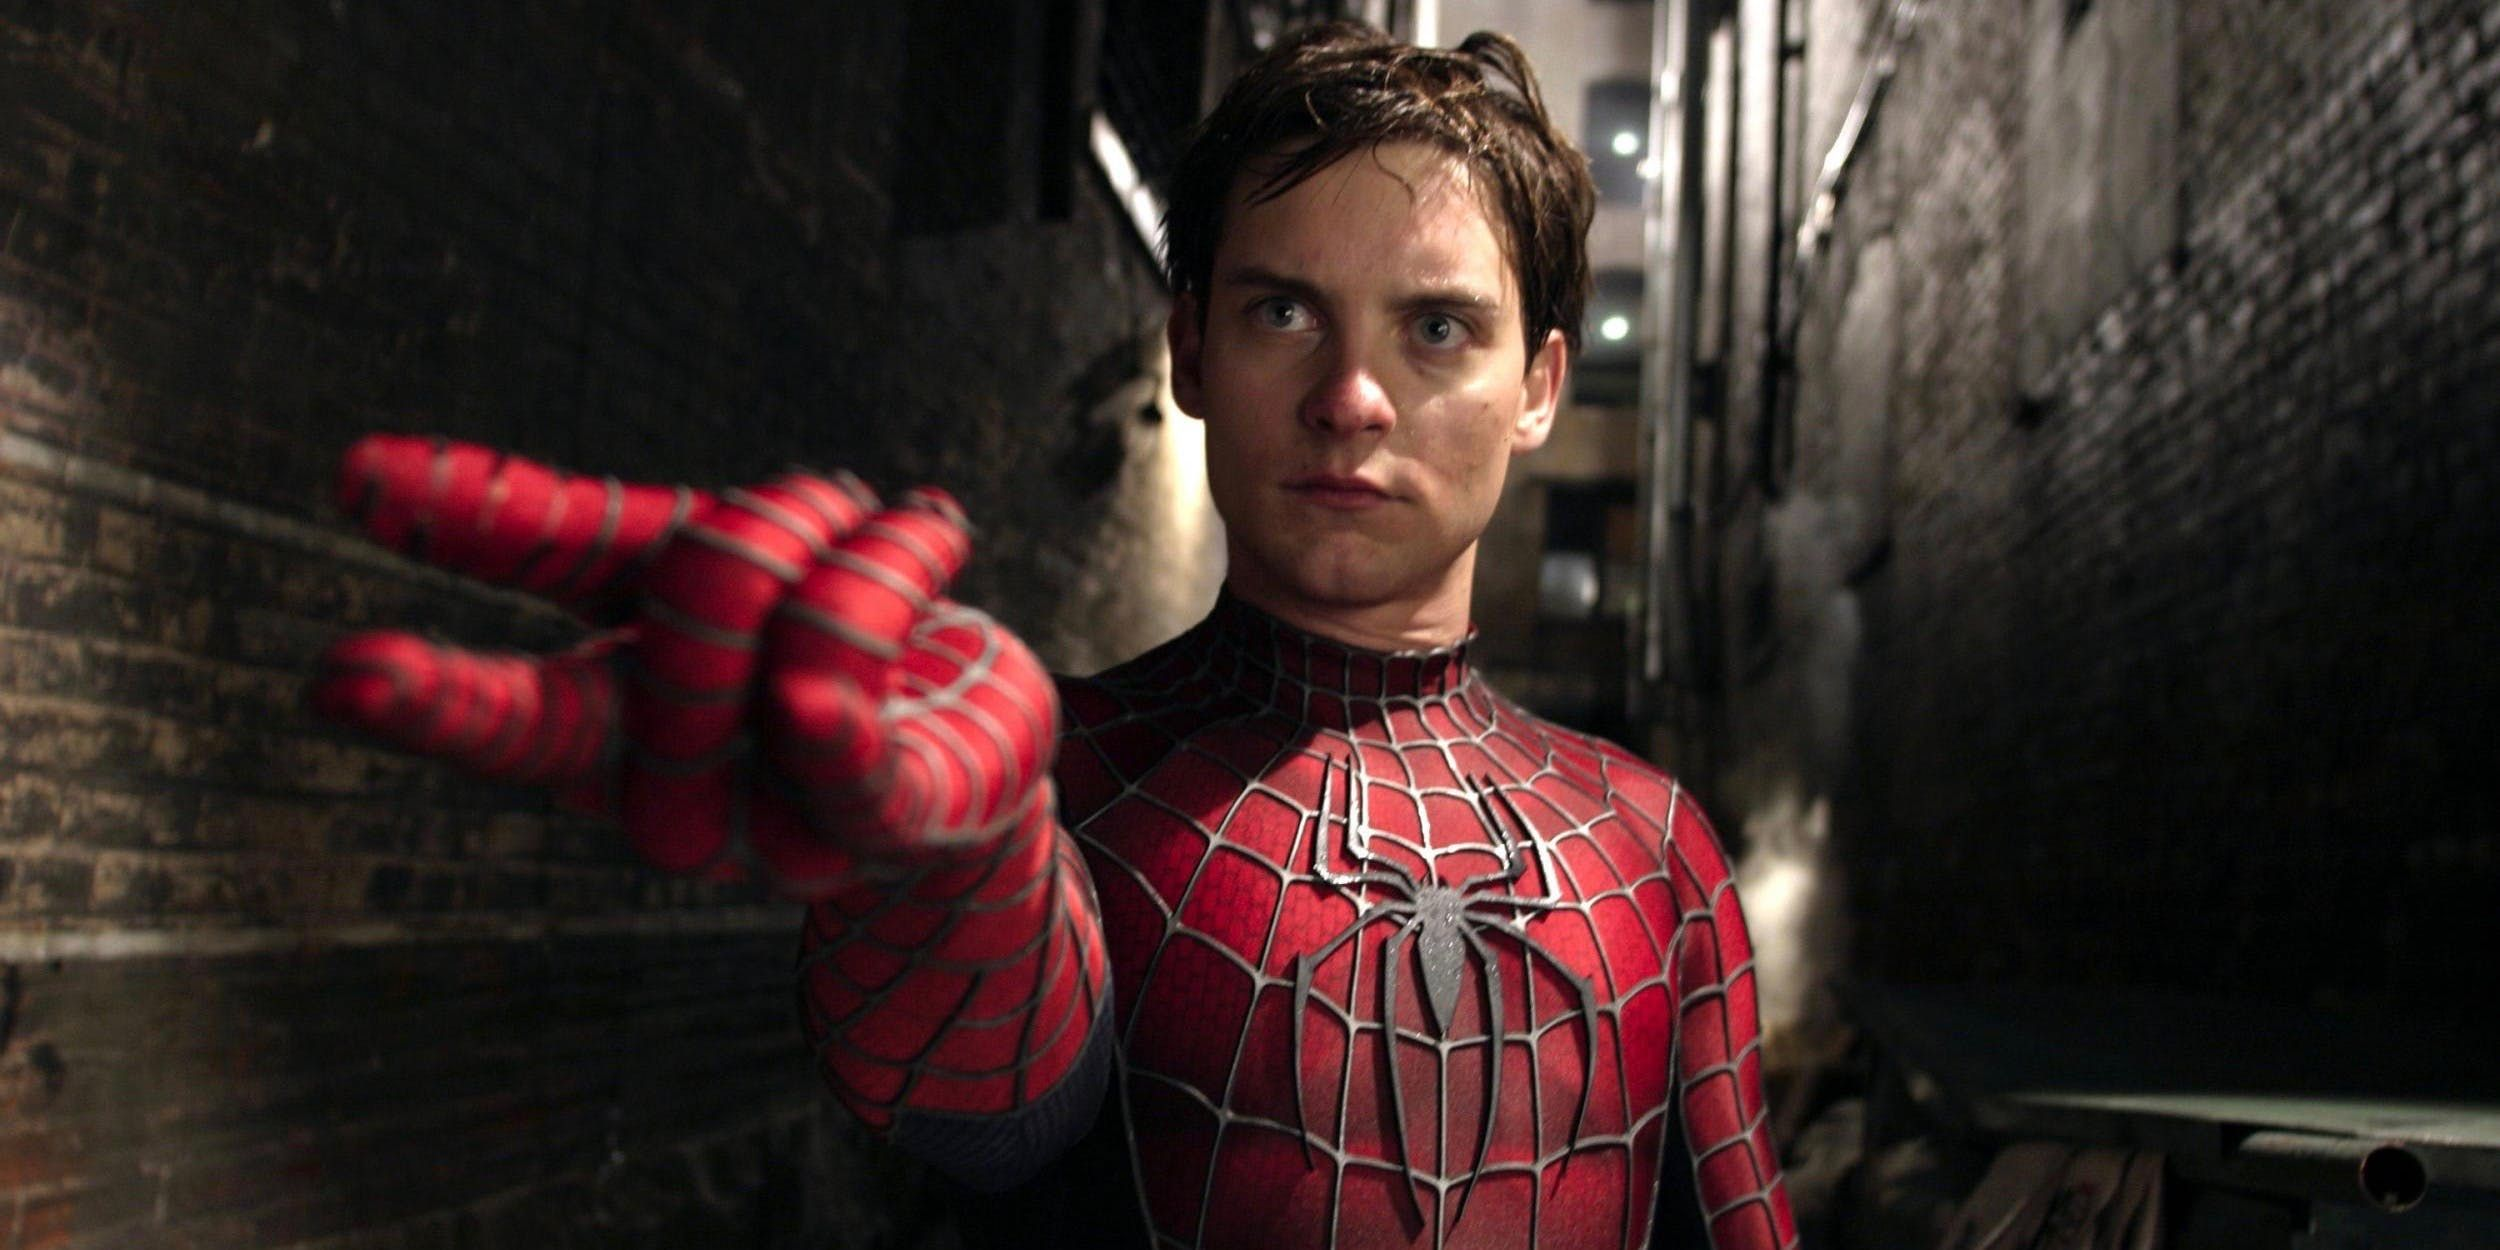 The 20 Oldest Actors To Play High School Characters Spiderman Spiderman Movie Superhero Movies